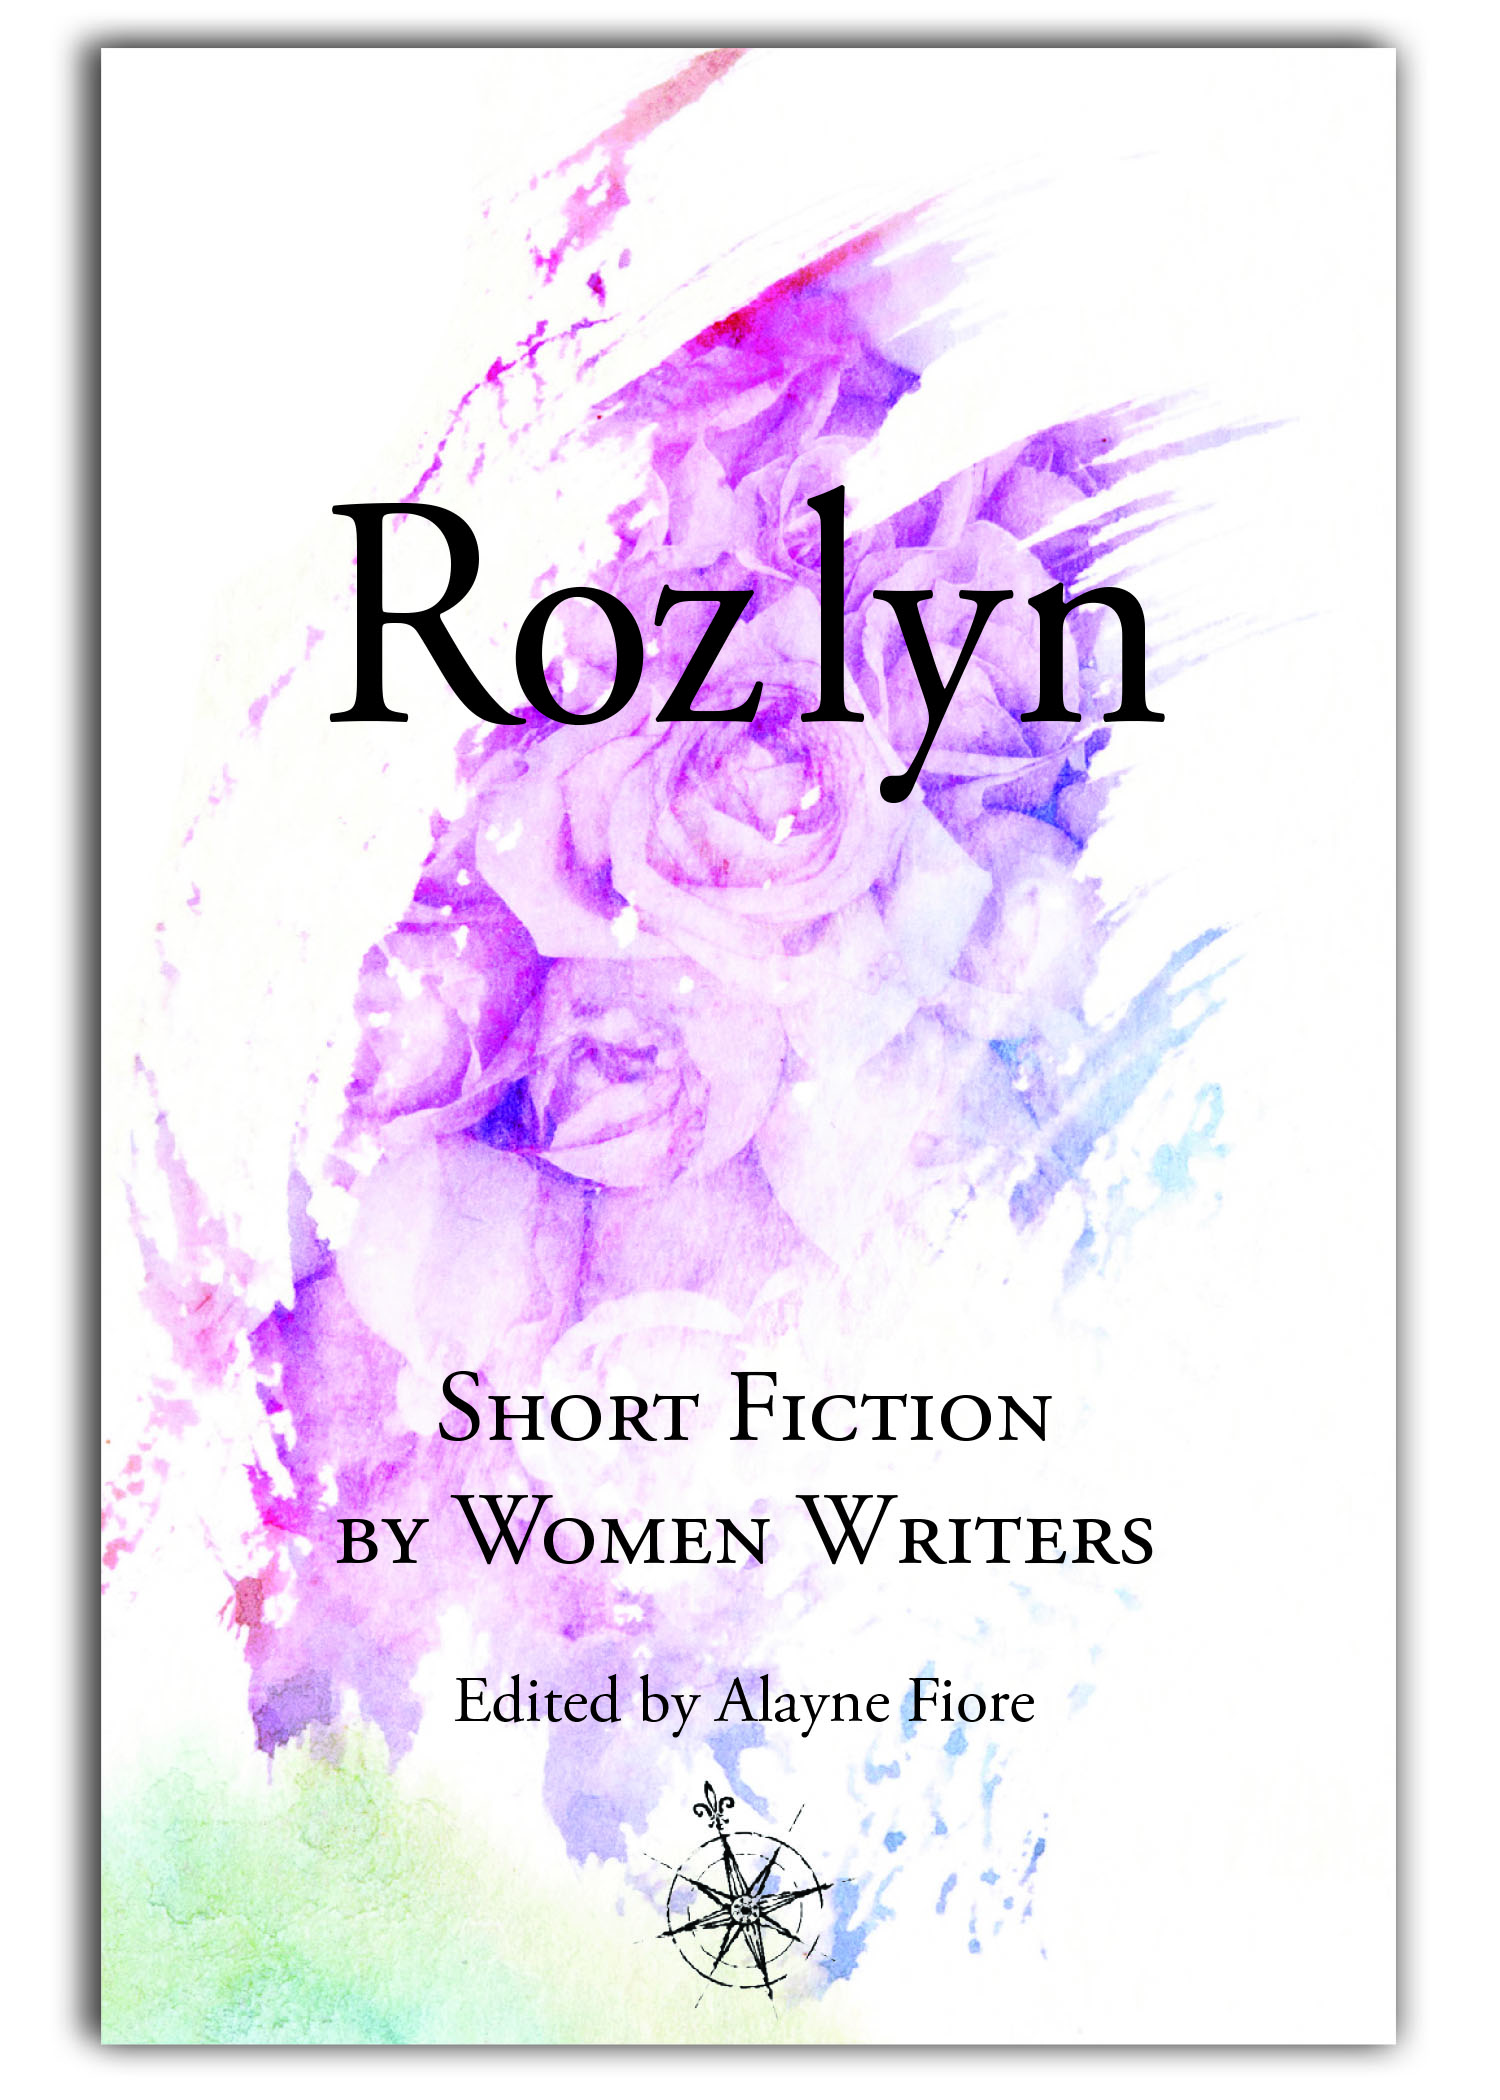 short stories by selected women writers The refugees is a collection of perfectly formed stories exploring questions of immigration, identity, love, and family the stories were written over a period of twenty years by viet thanh nguyen, a vietnamese-american novelist and short-story writer, the winner of the 2016 pulitzer prize for fiction.